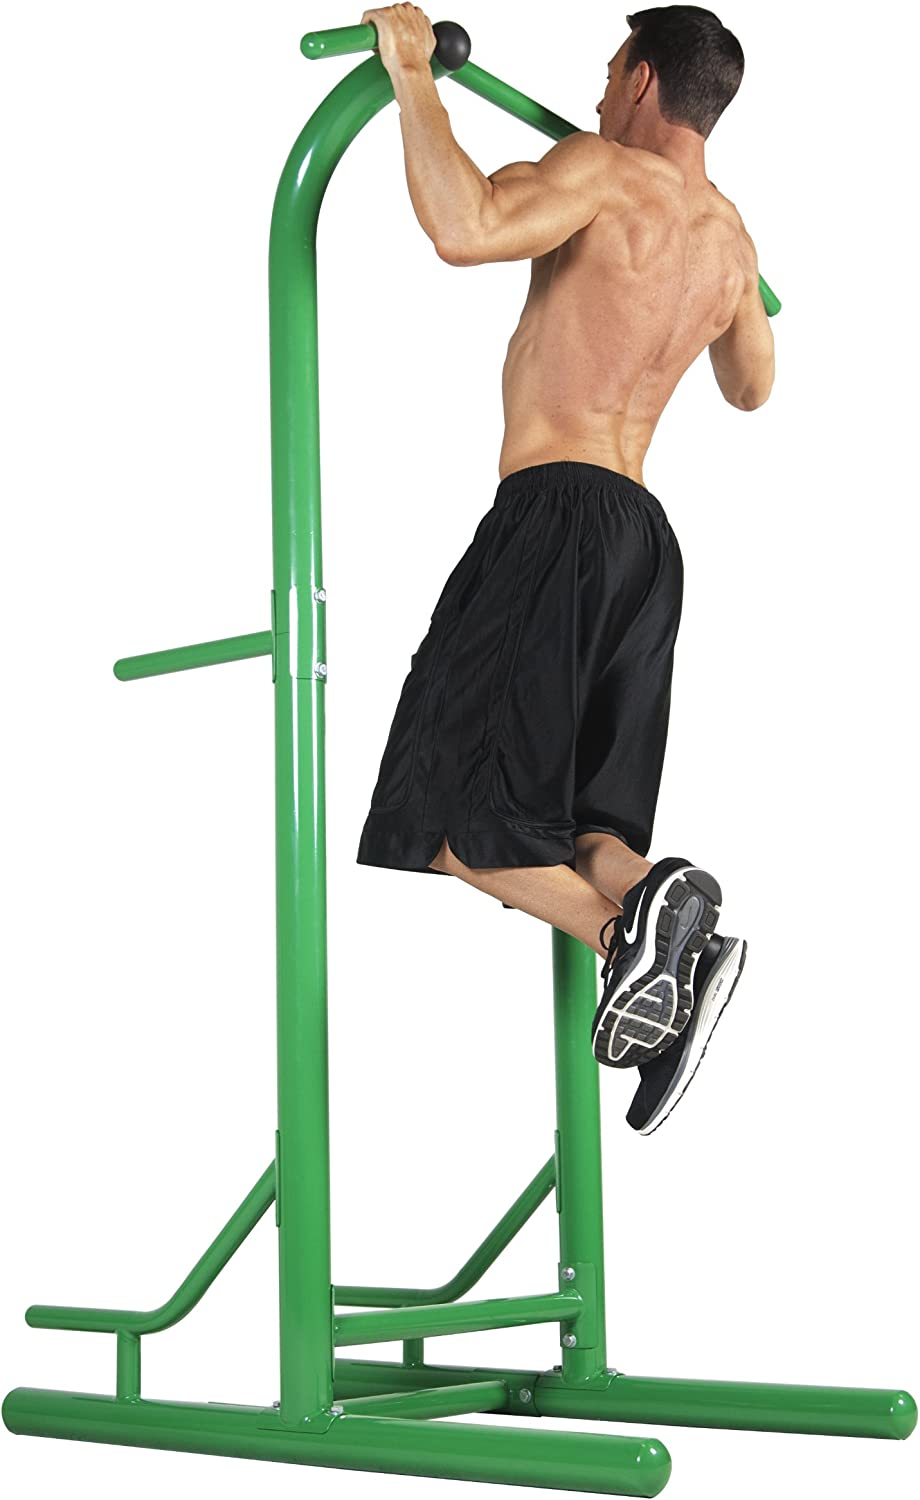 8. Stamina Outdoor Fitness Power Tower